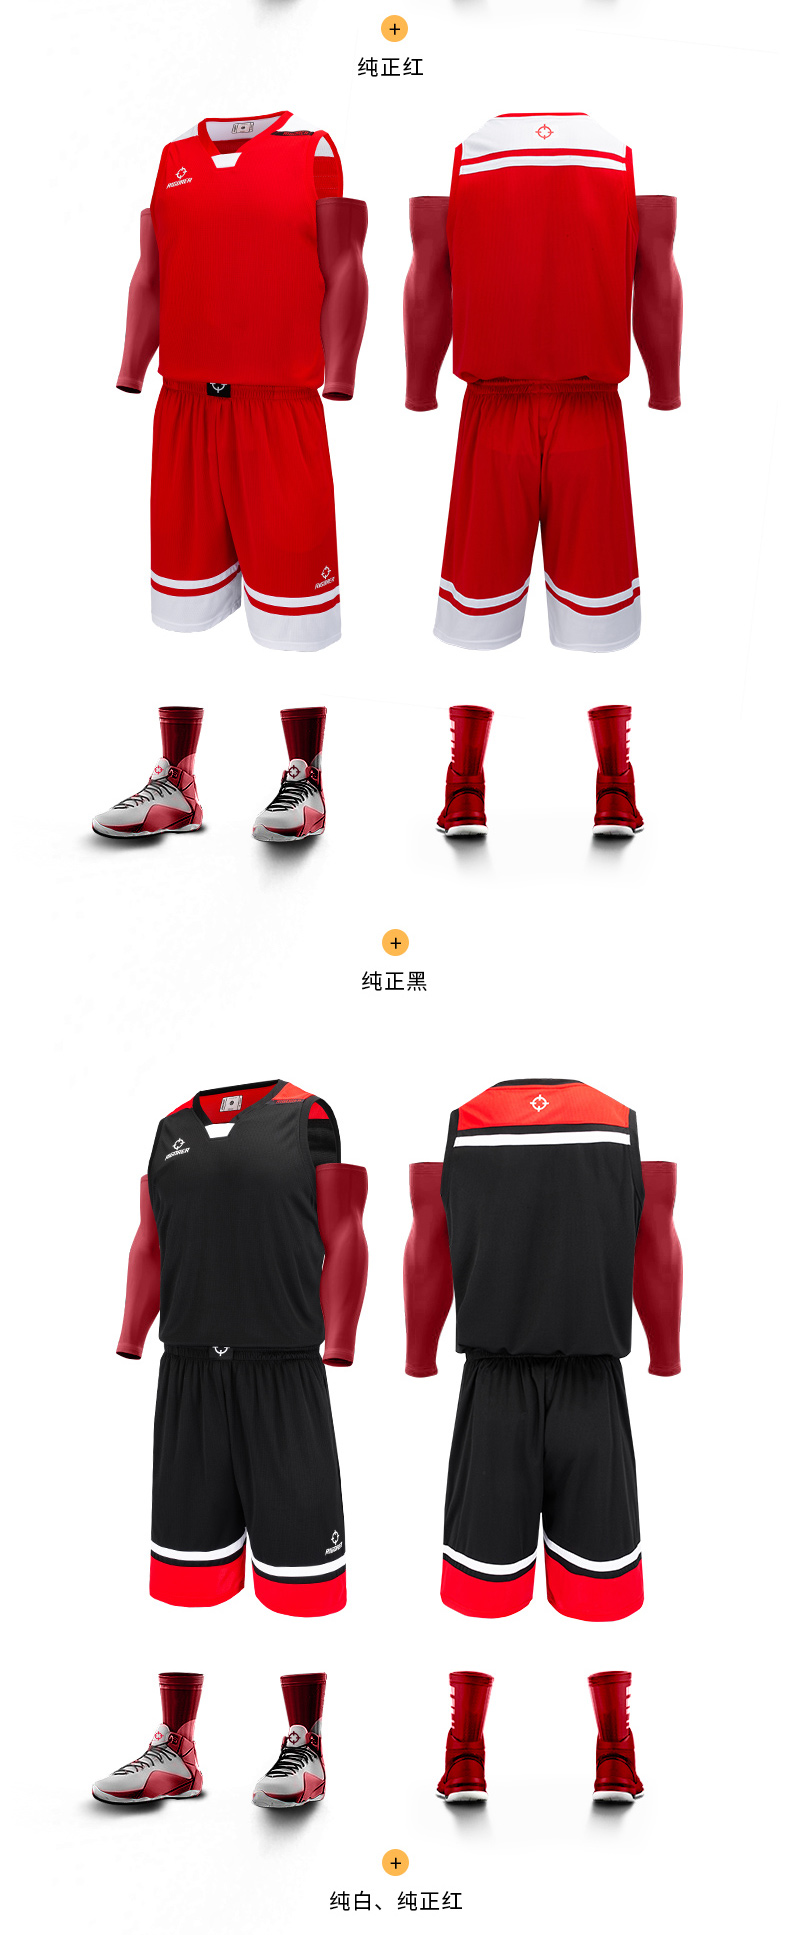 Rigorer university basketball team uniform match jerseys